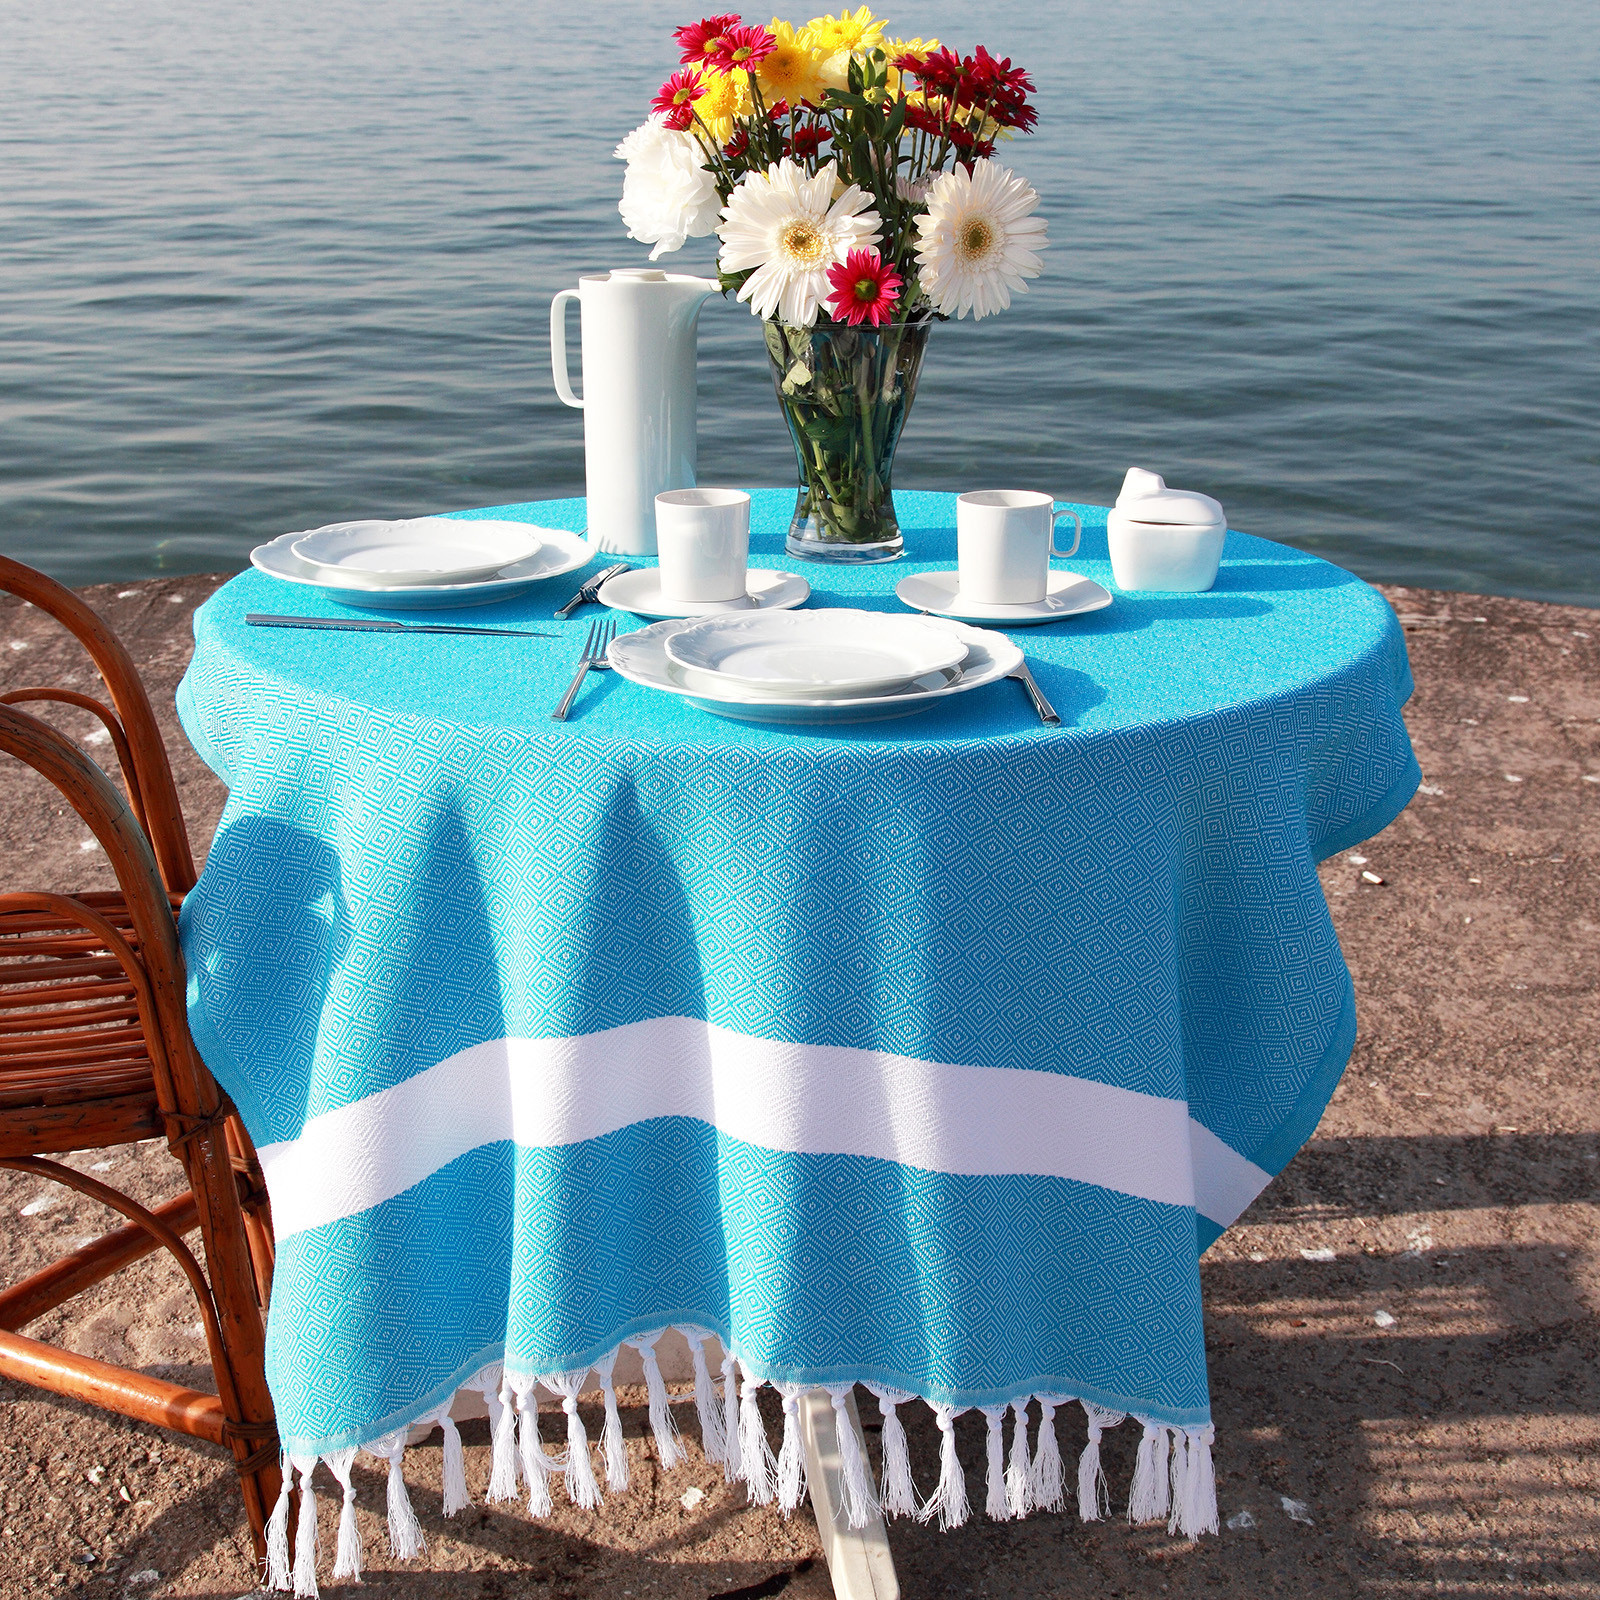 tablecloth size guide pestemal for inch round accent table target vases pub height and chairs mirror side living room rectangle nesting tables wood best furniture chair cushions